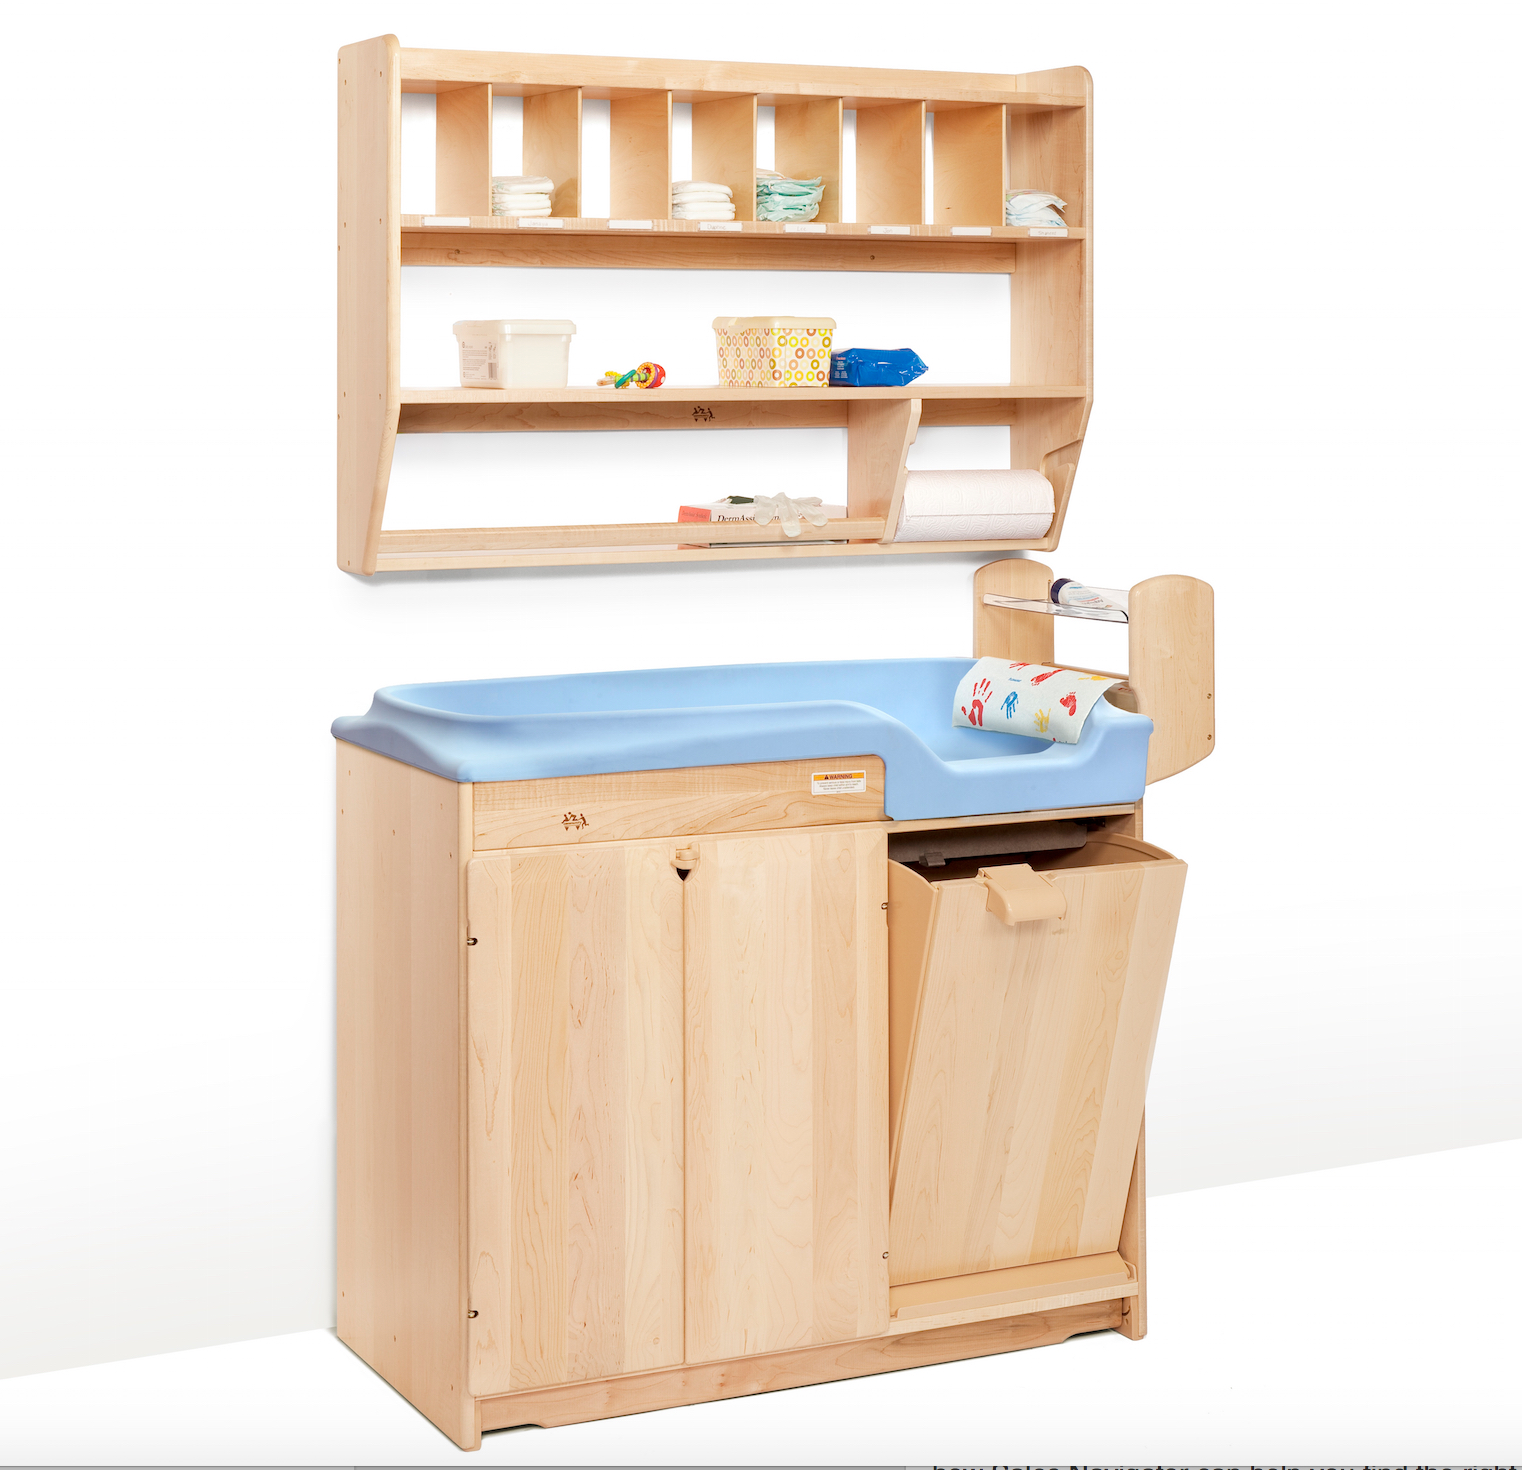 RIM baby changing table